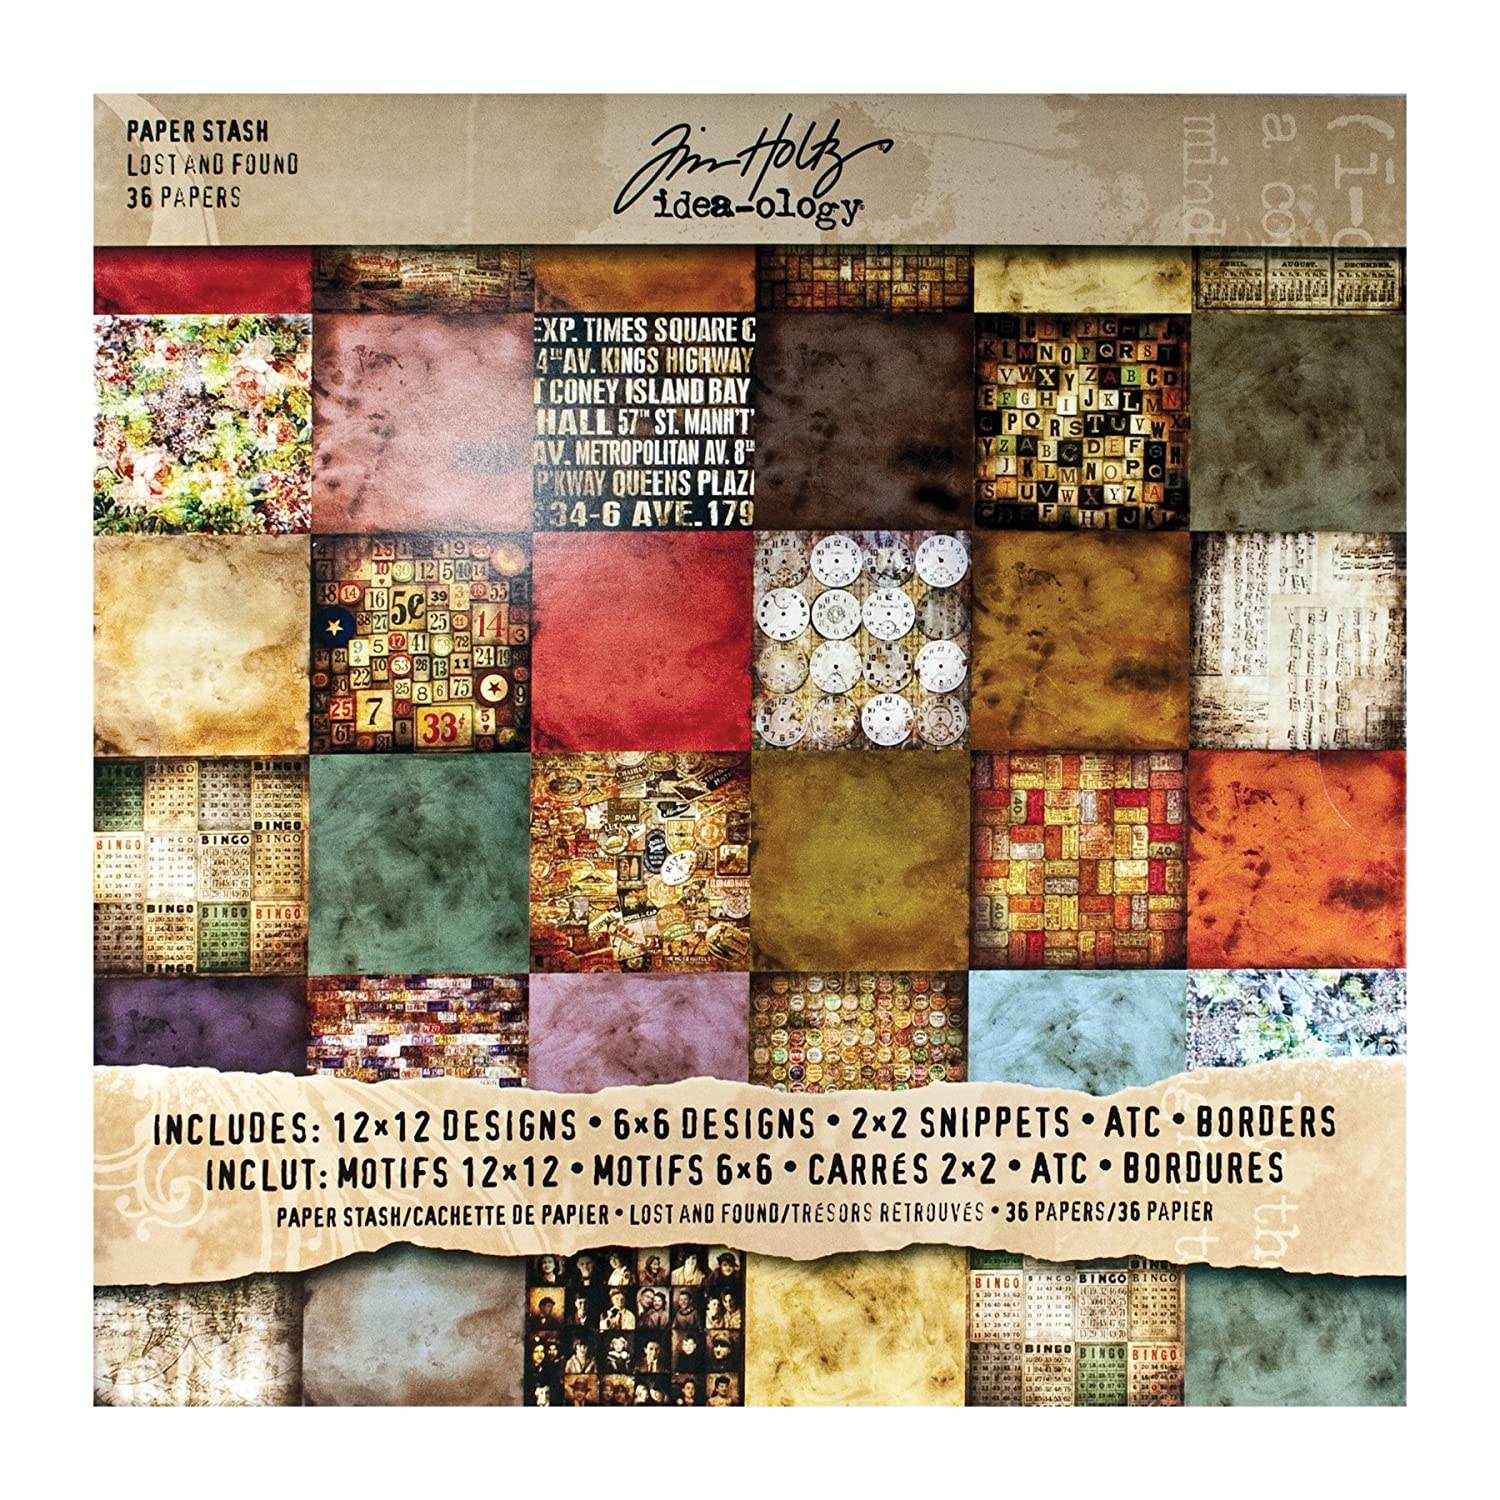 ADVANTUS CORPORATION Tim Holtz Idea-ology Paper Stash, Dapper, 36 Sheets of 12 x 12 Inch Double-sided Cardstock Papers in Brown, Beige, Brown (TH93260) 128531